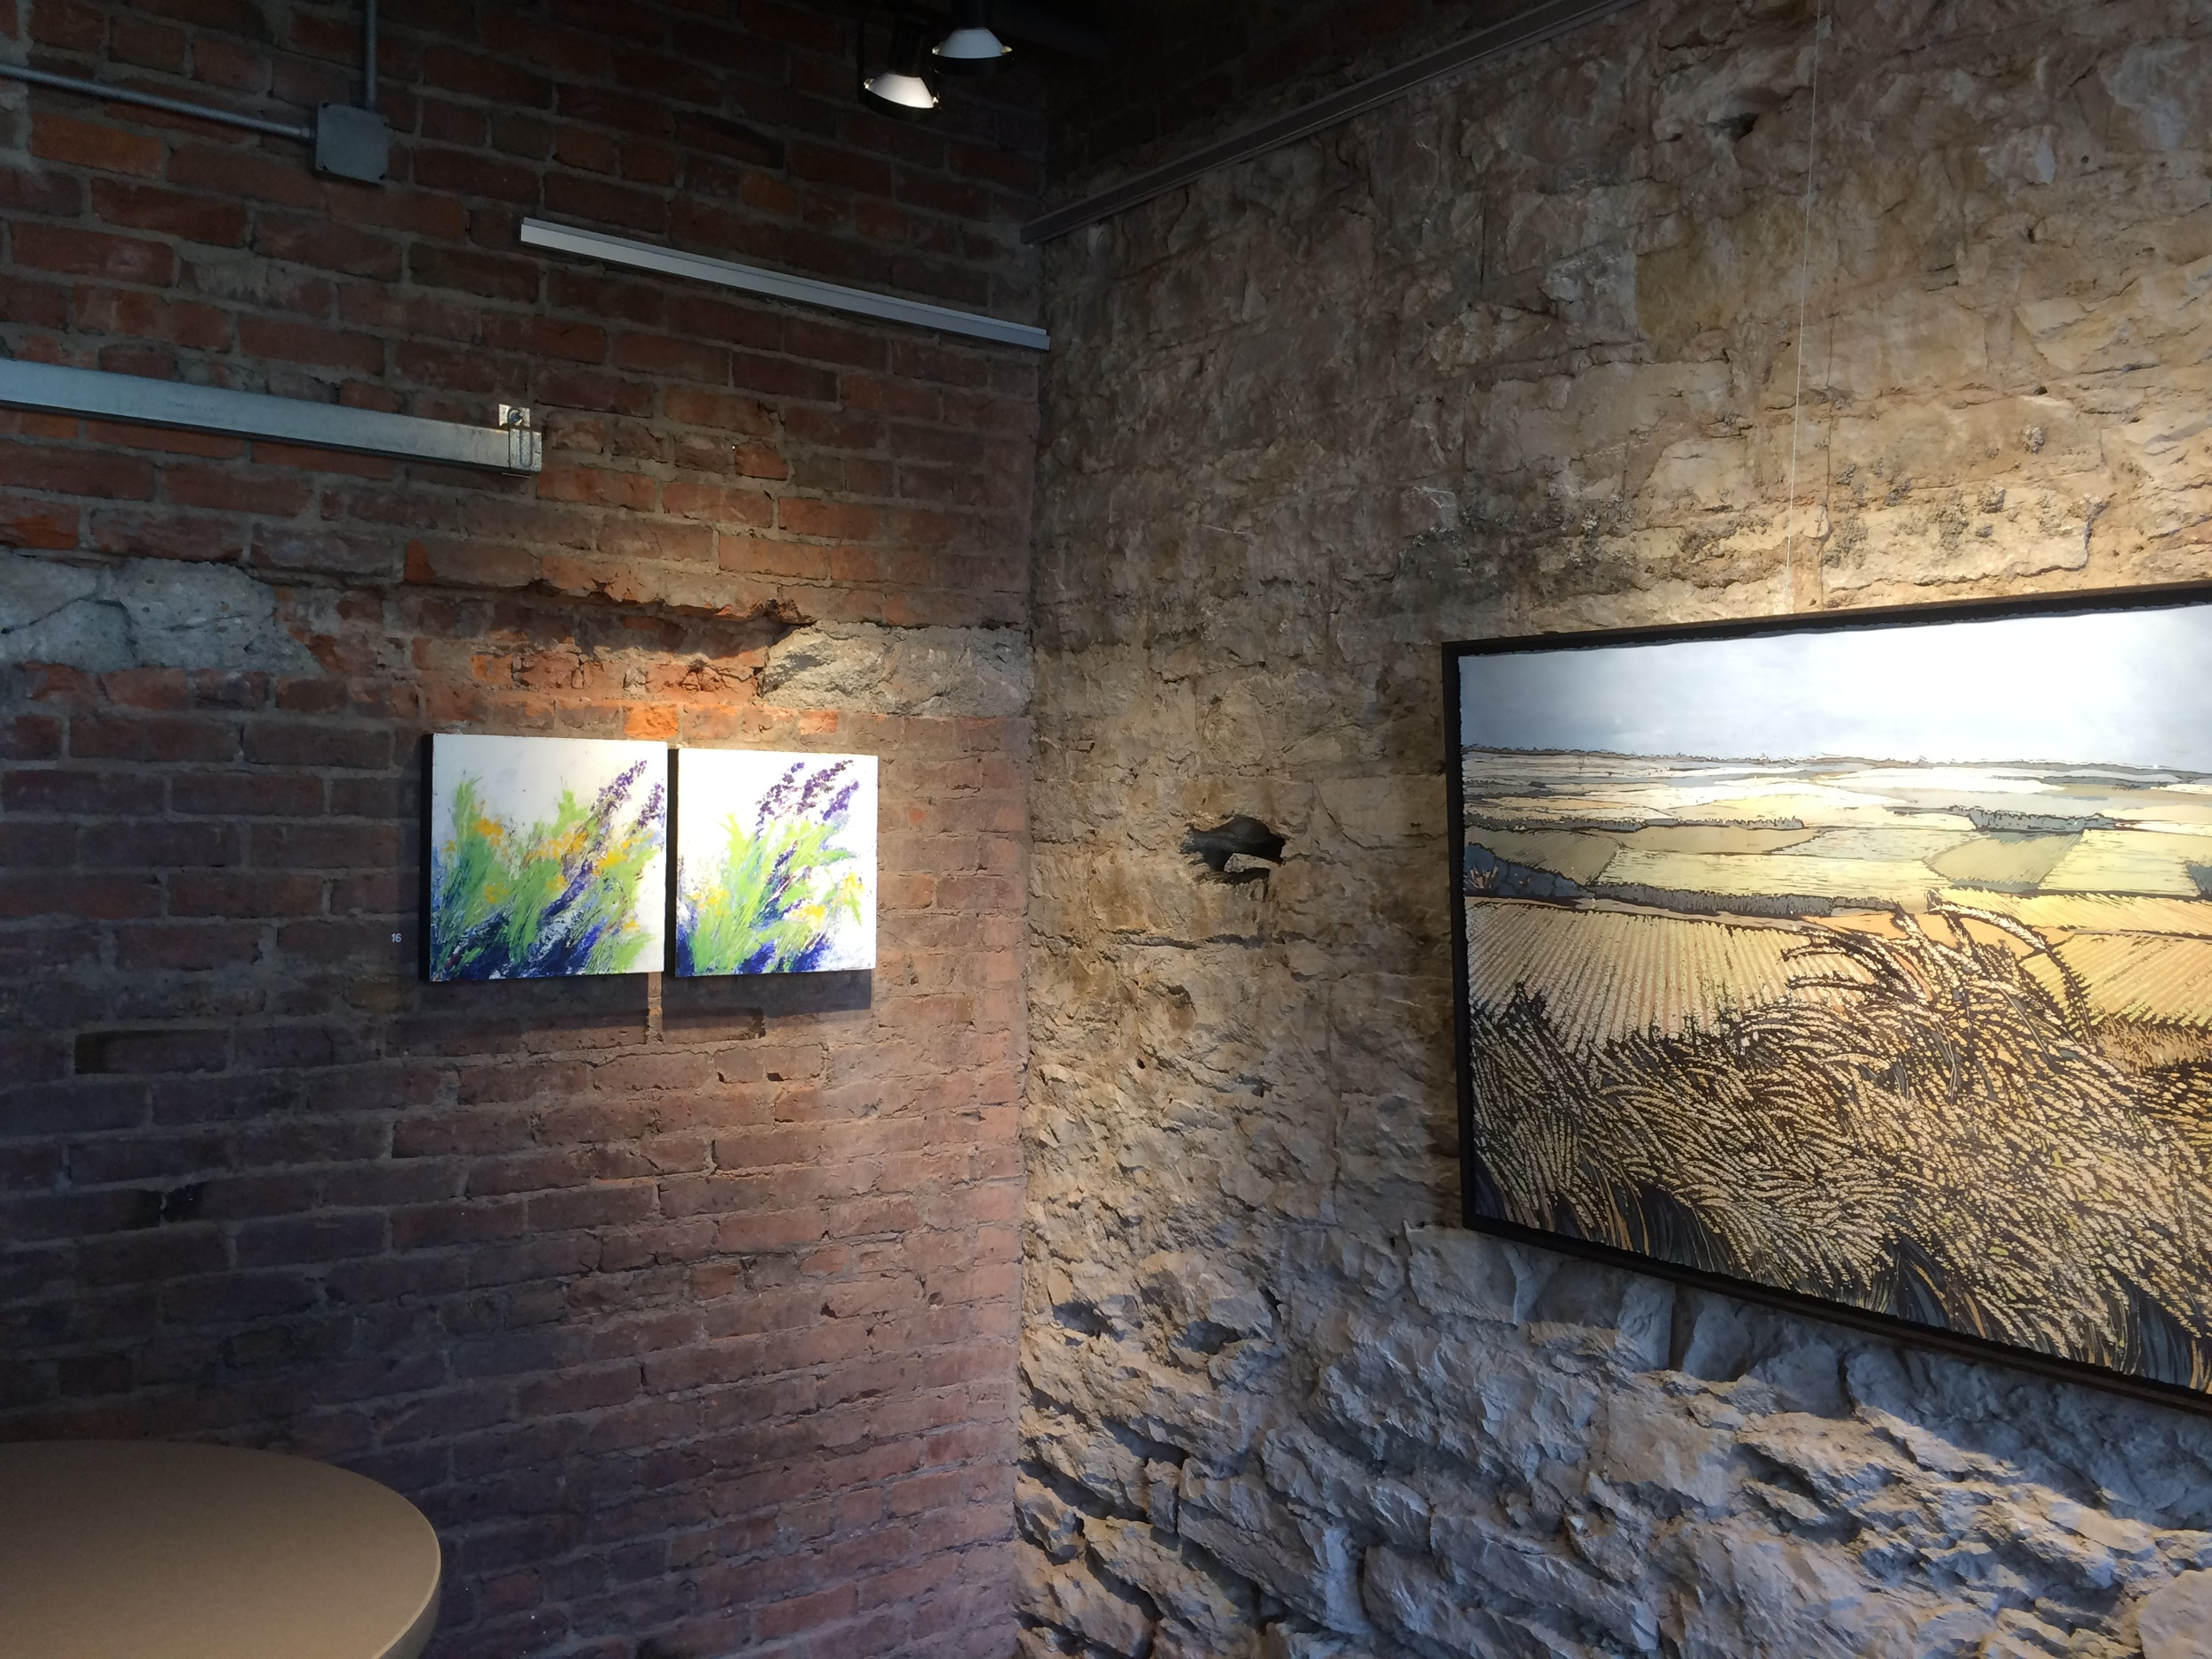 Wind Across the Sandbar #1 and #2 draw visitors' eyes into one Kris Allphin's batiks at the Fred Simon Gallery, Nebraska Arts Council.